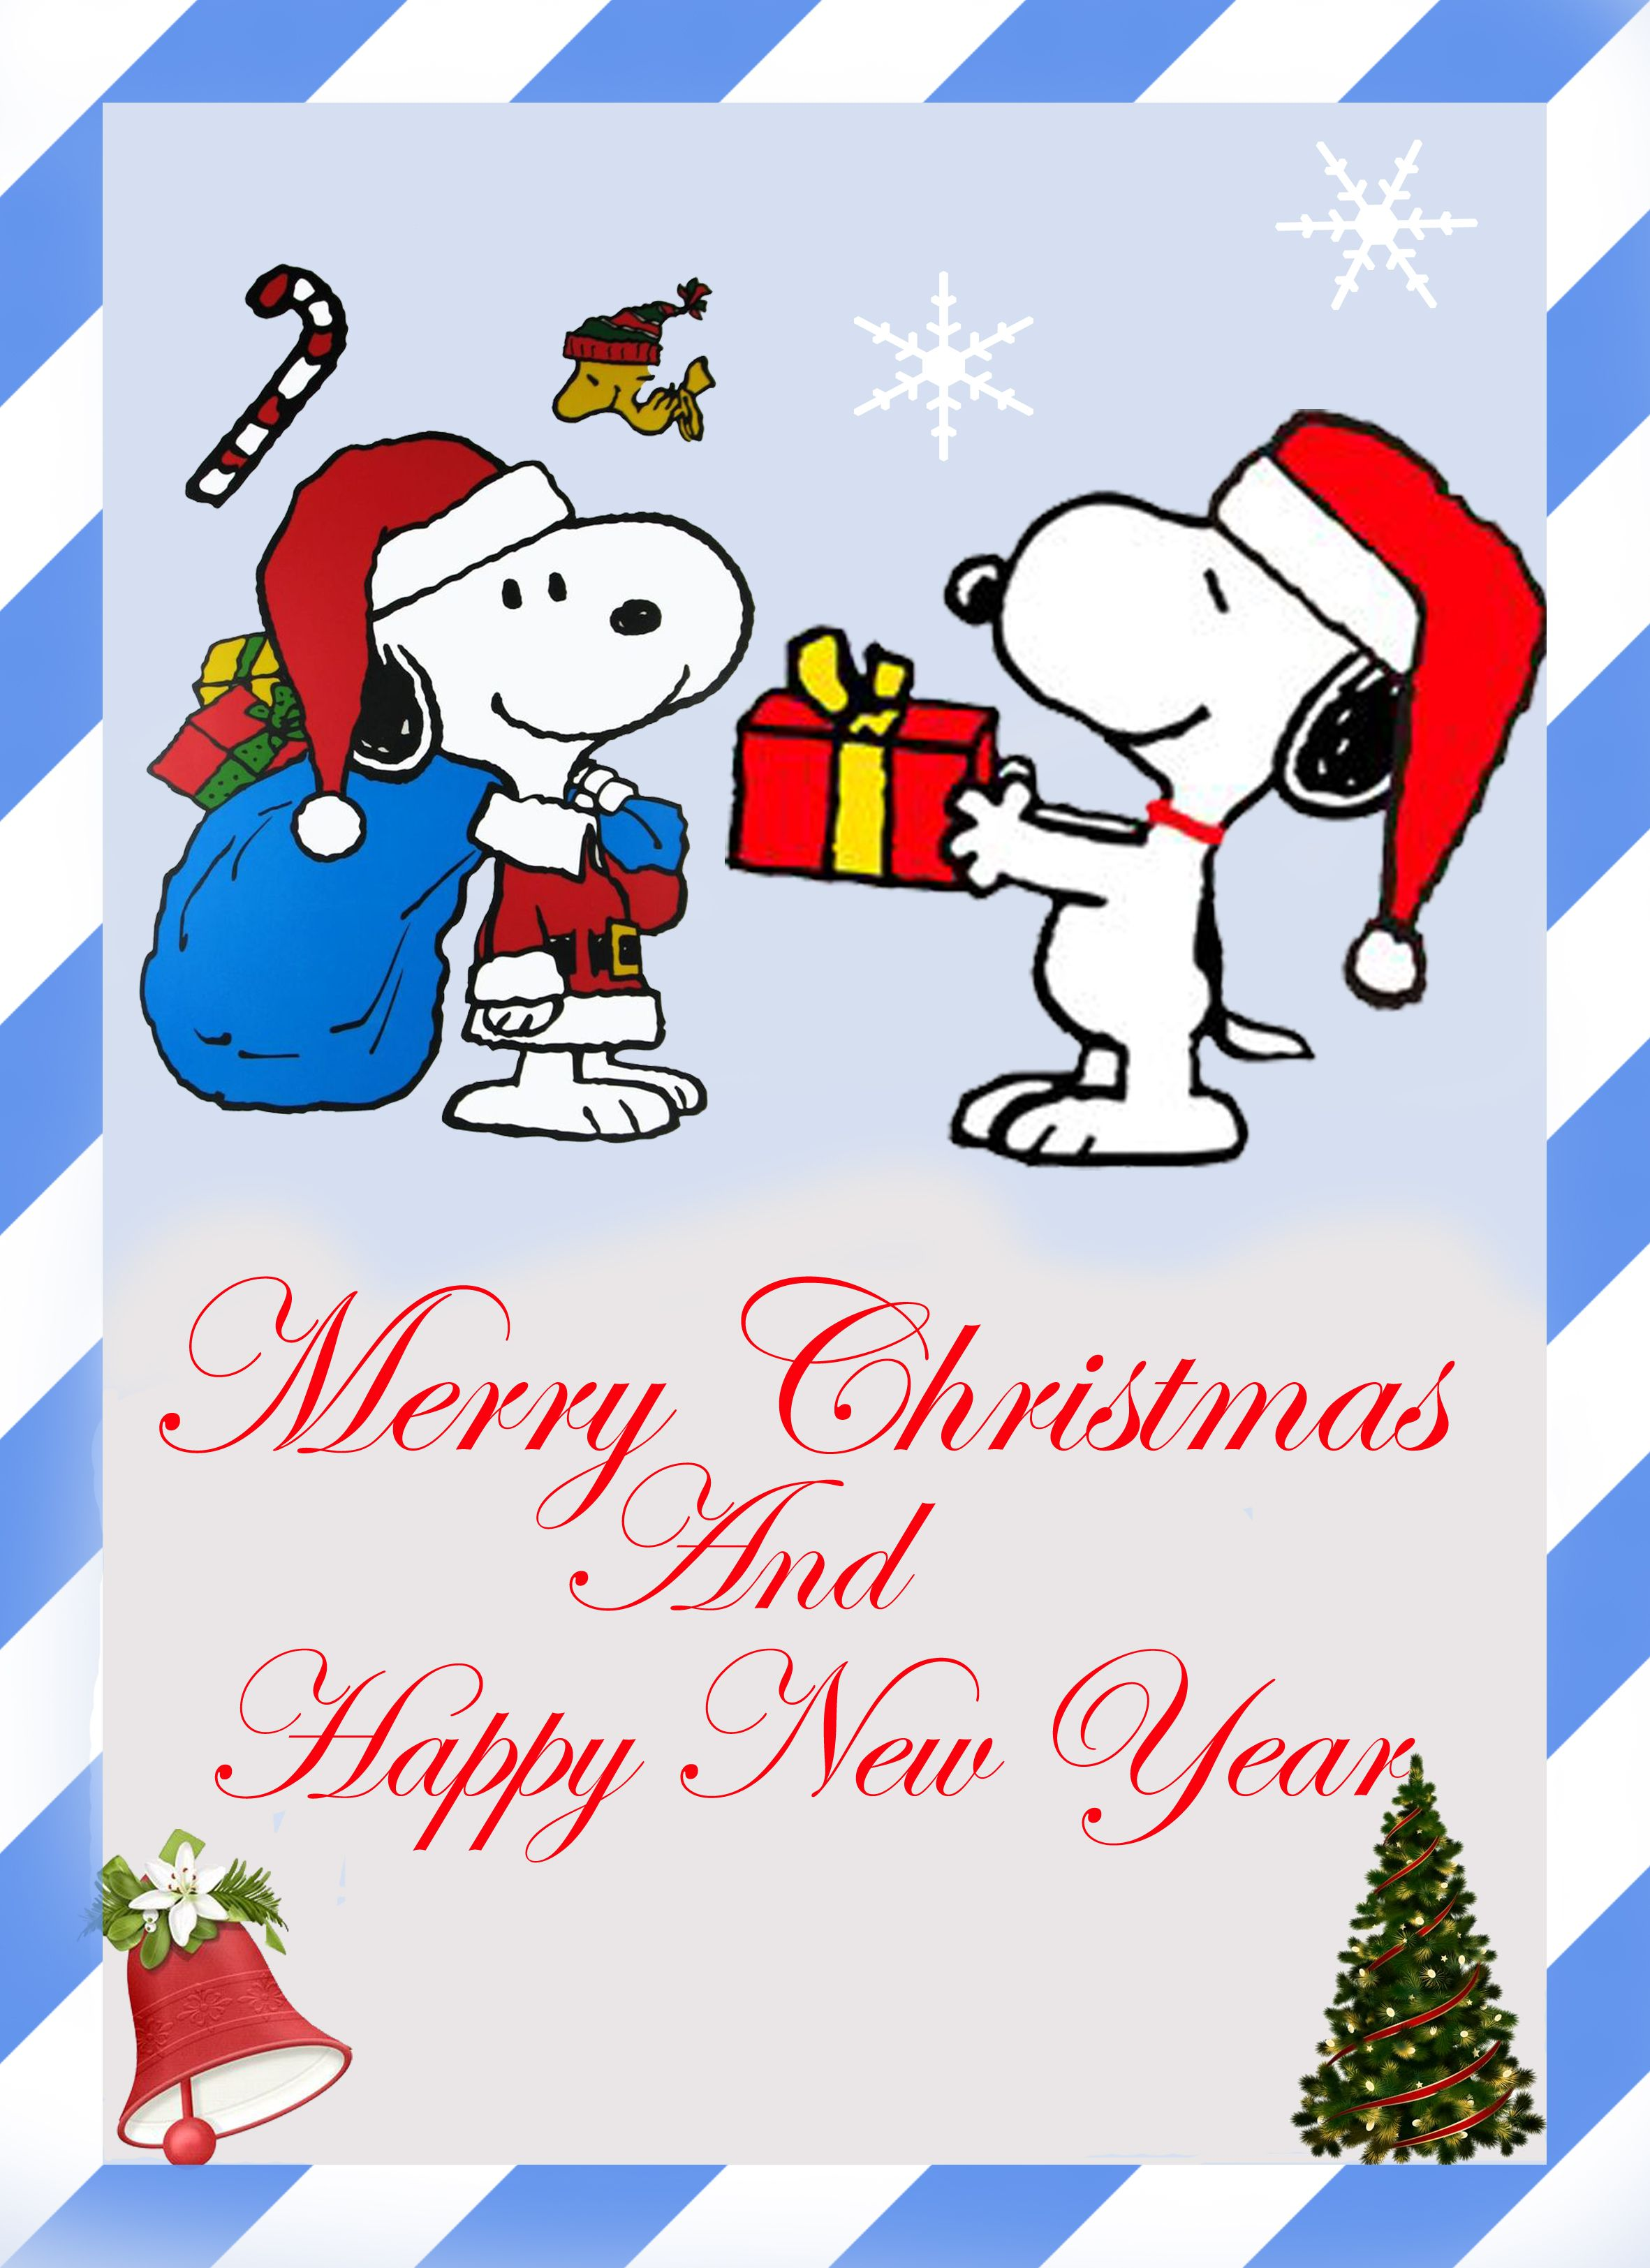 Snoopy Christmas Cards.Merry Christmas And Happy New Year Works Snoopy Snoopy